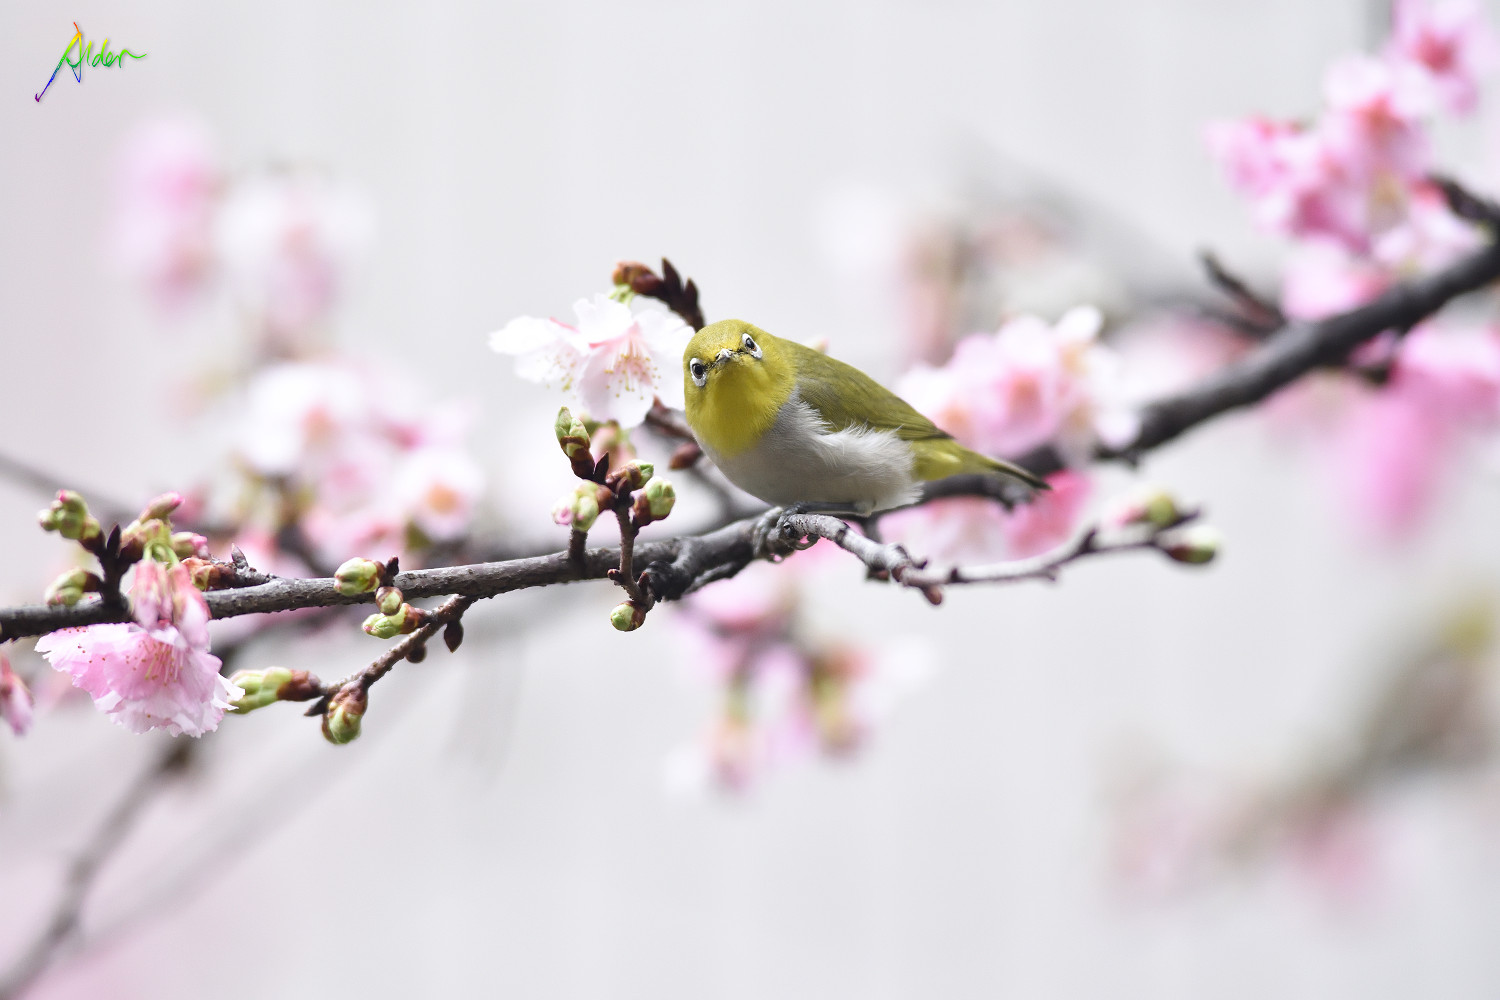 Sakura_White-eye_8588